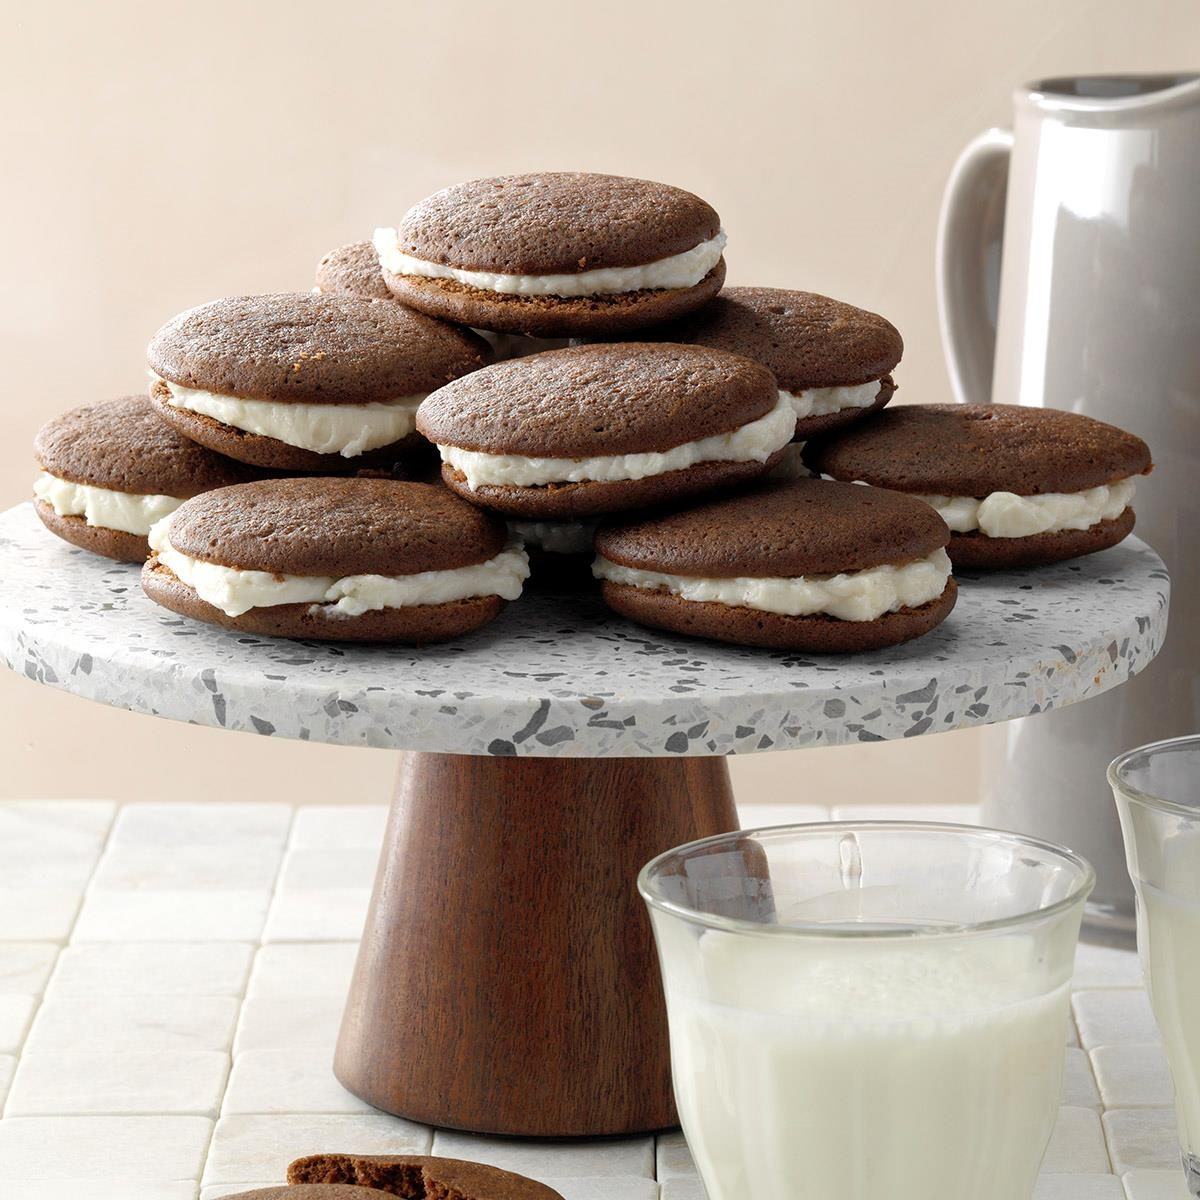 Old Fashioned Whoopie Pies Exps Diyd 8448 Eb09 24 7b 2